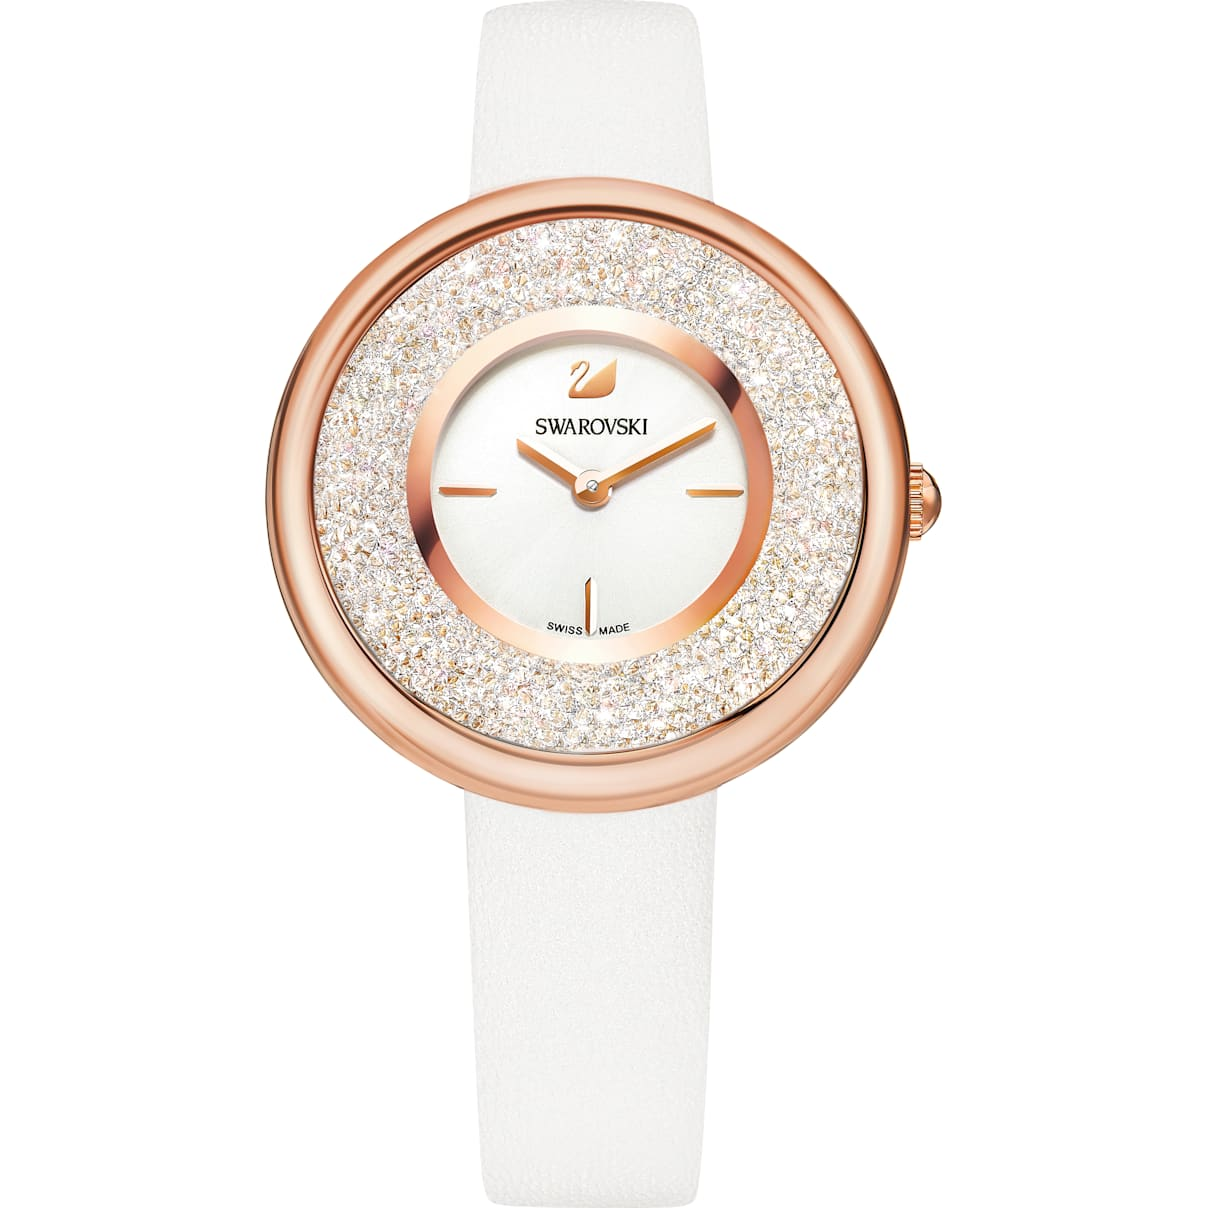 Swarovski Crystalline Pure Watch, Leather strap, White, Rose-gold tone PVD